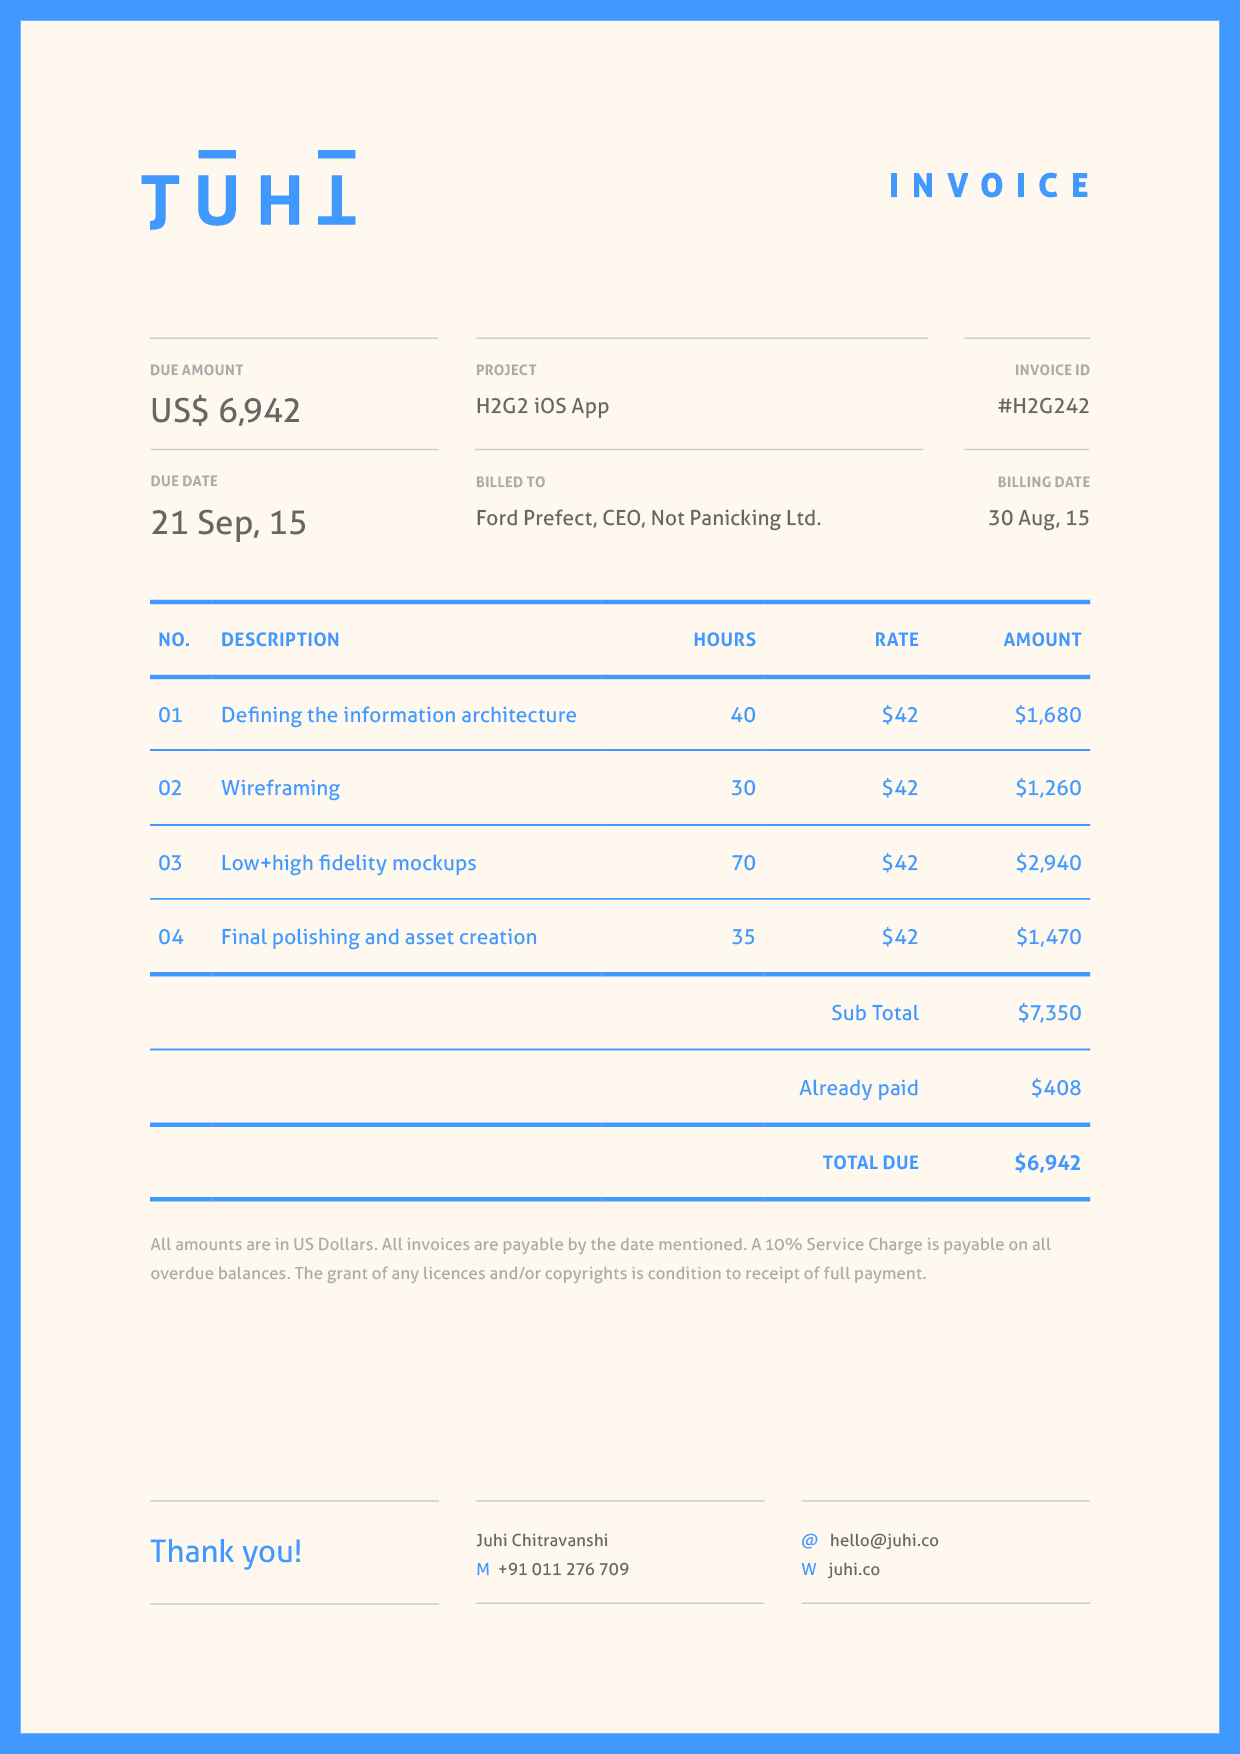 Ebitus  Nice Dont Hold Back On Your Invoice  Inspiring Designs  With Gorgeous Invoice By Juhi Chitravanshi Follow With Agreeable Mazda Cx  Dealer Invoice Also Free Photography Invoice Template In Addition Pro Forma Invoice Example And Dodge Ram  Invoice Price As Well As Free Printable Service Invoices Additionally Pod Invoice From Inspirationfeedcom With Ebitus  Gorgeous Dont Hold Back On Your Invoice  Inspiring Designs  With Agreeable Invoice By Juhi Chitravanshi Follow And Nice Mazda Cx  Dealer Invoice Also Free Photography Invoice Template In Addition Pro Forma Invoice Example From Inspirationfeedcom